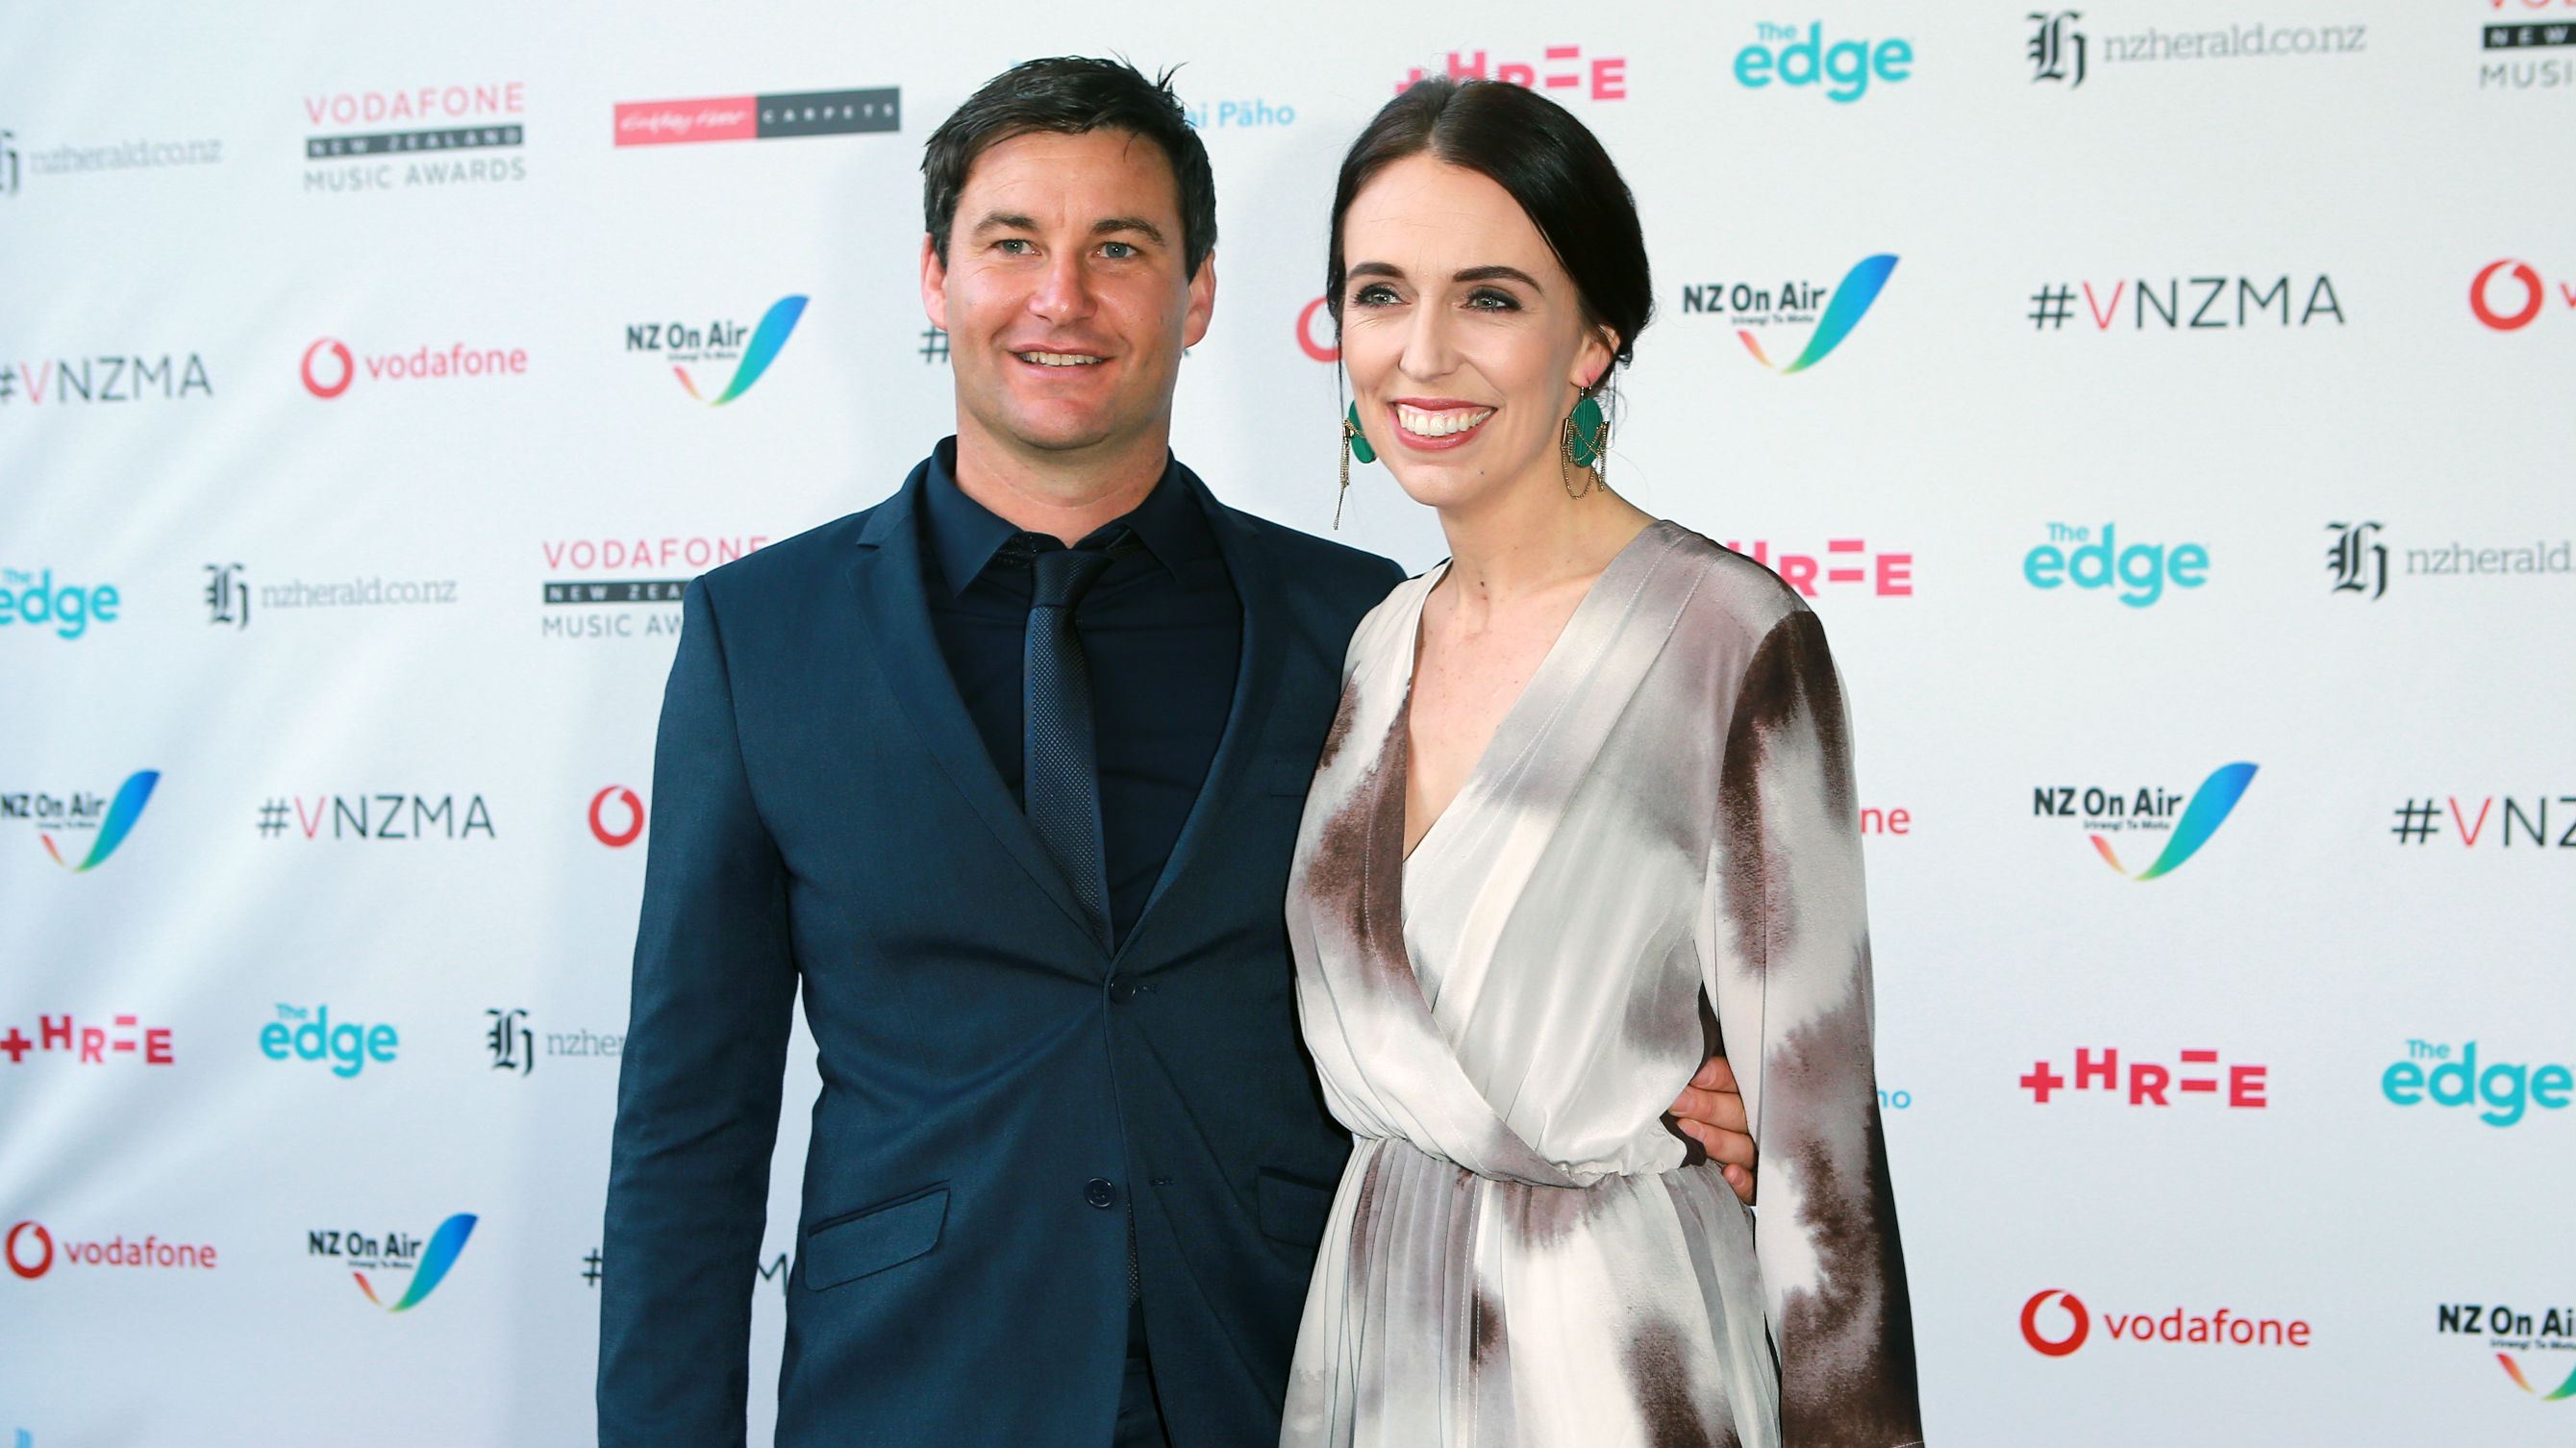 Jacinda Ardern Gallery: Jacinda Ardern: Why I Want Arts And Culture Integrated